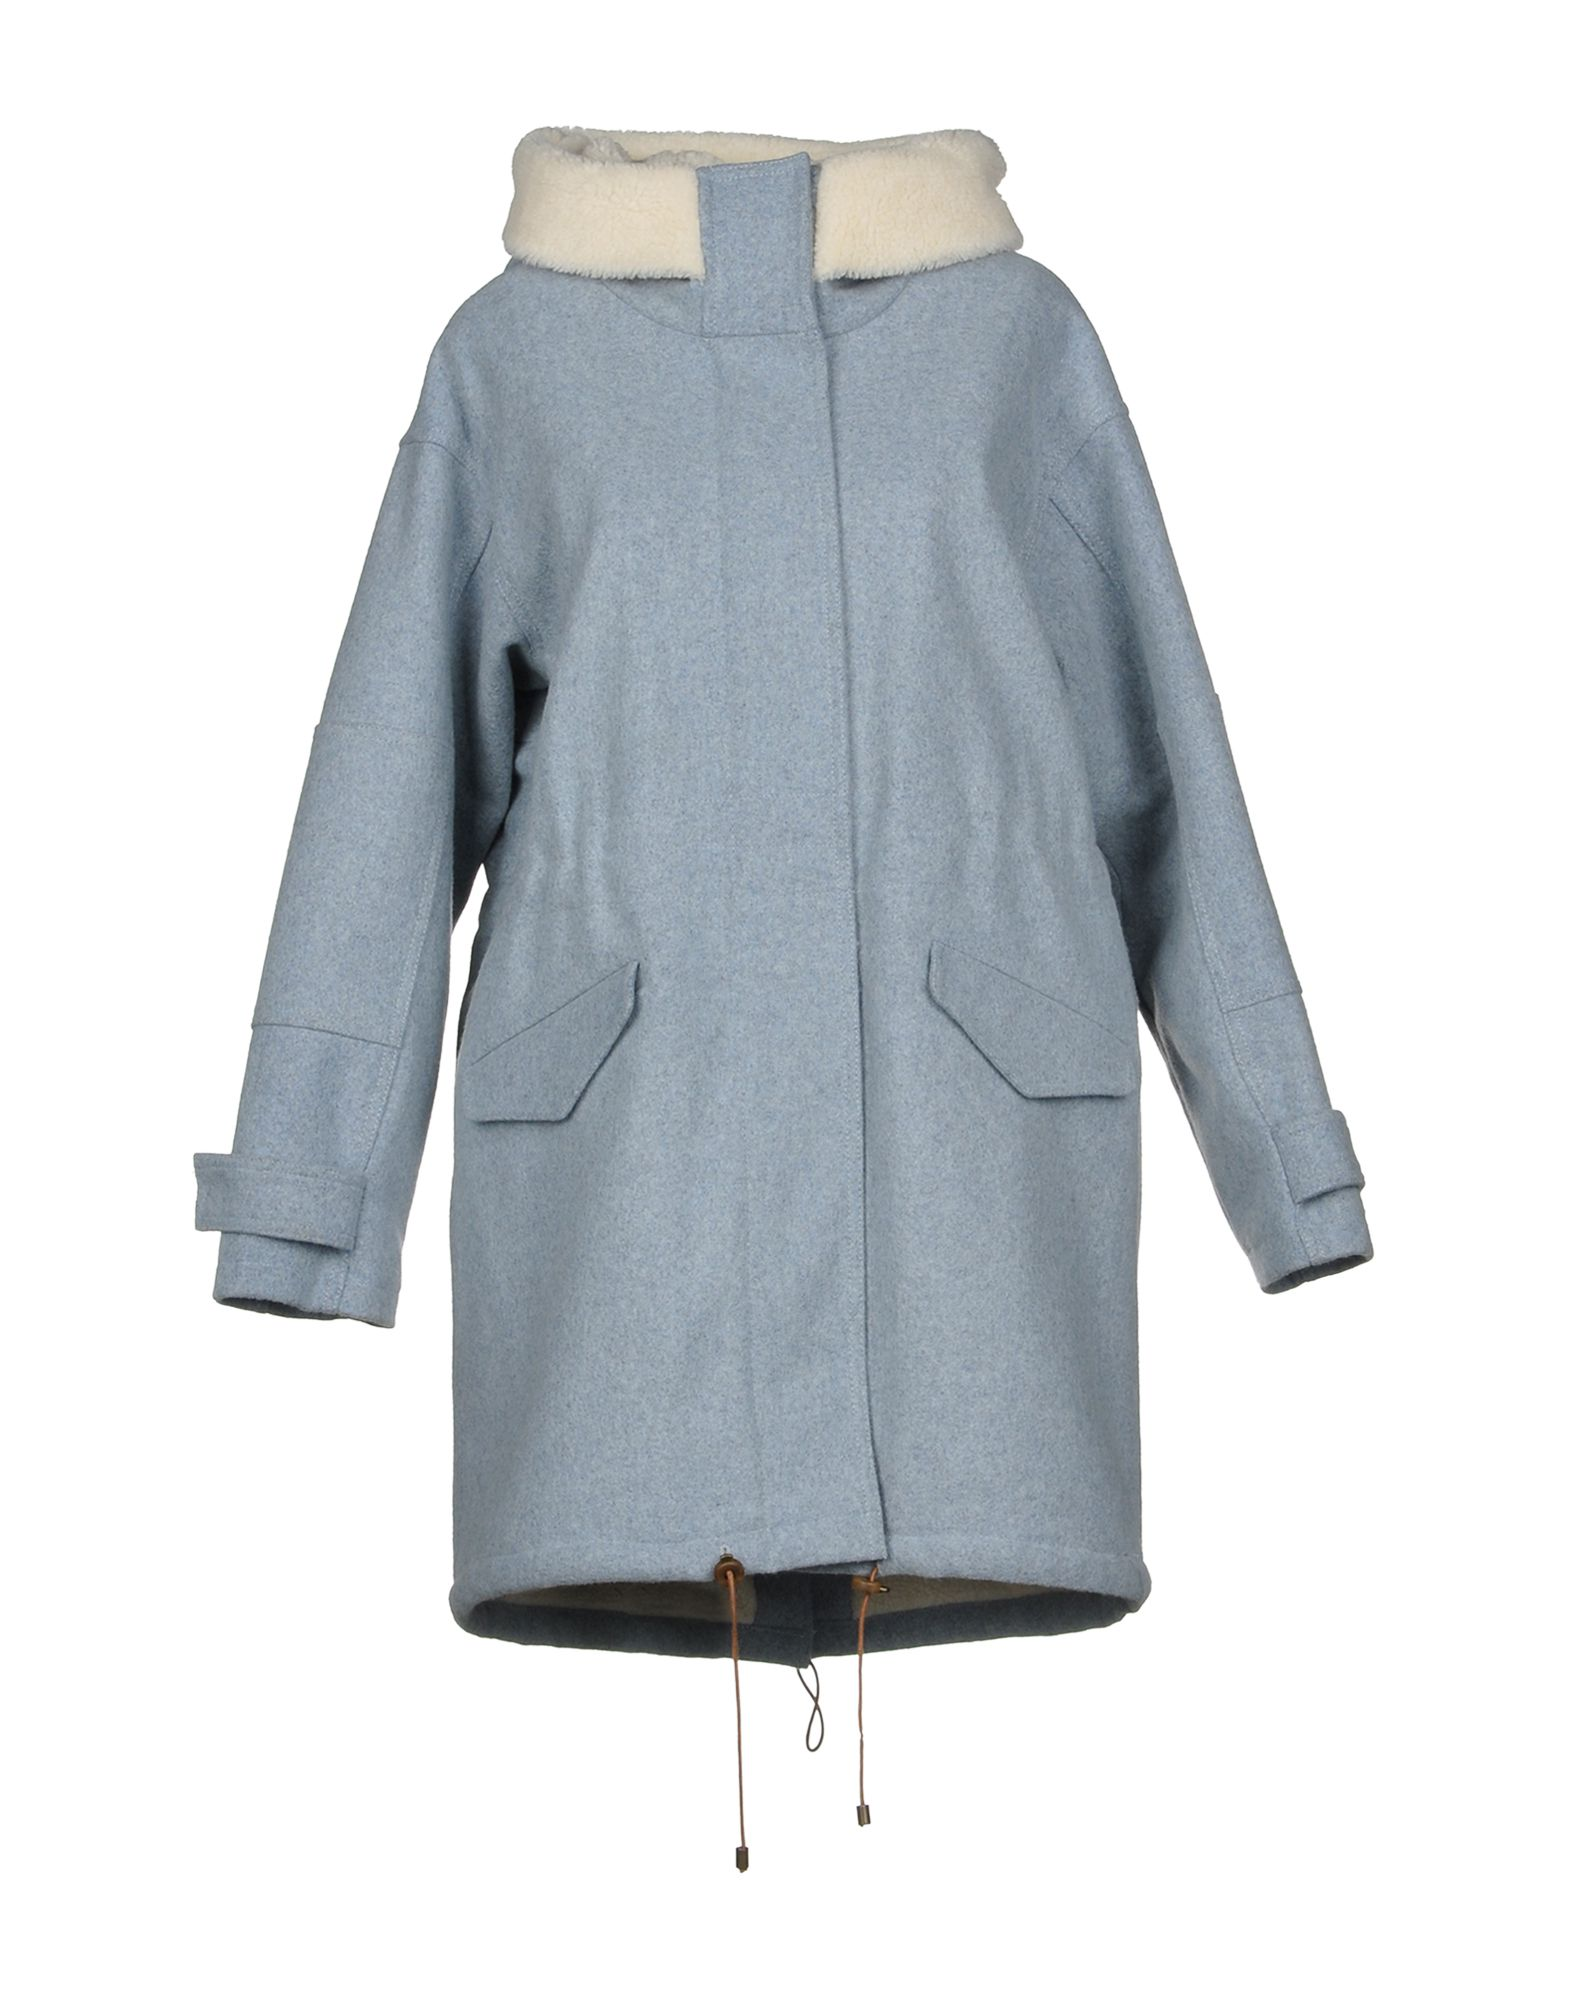 SESSUN Coat in Grey